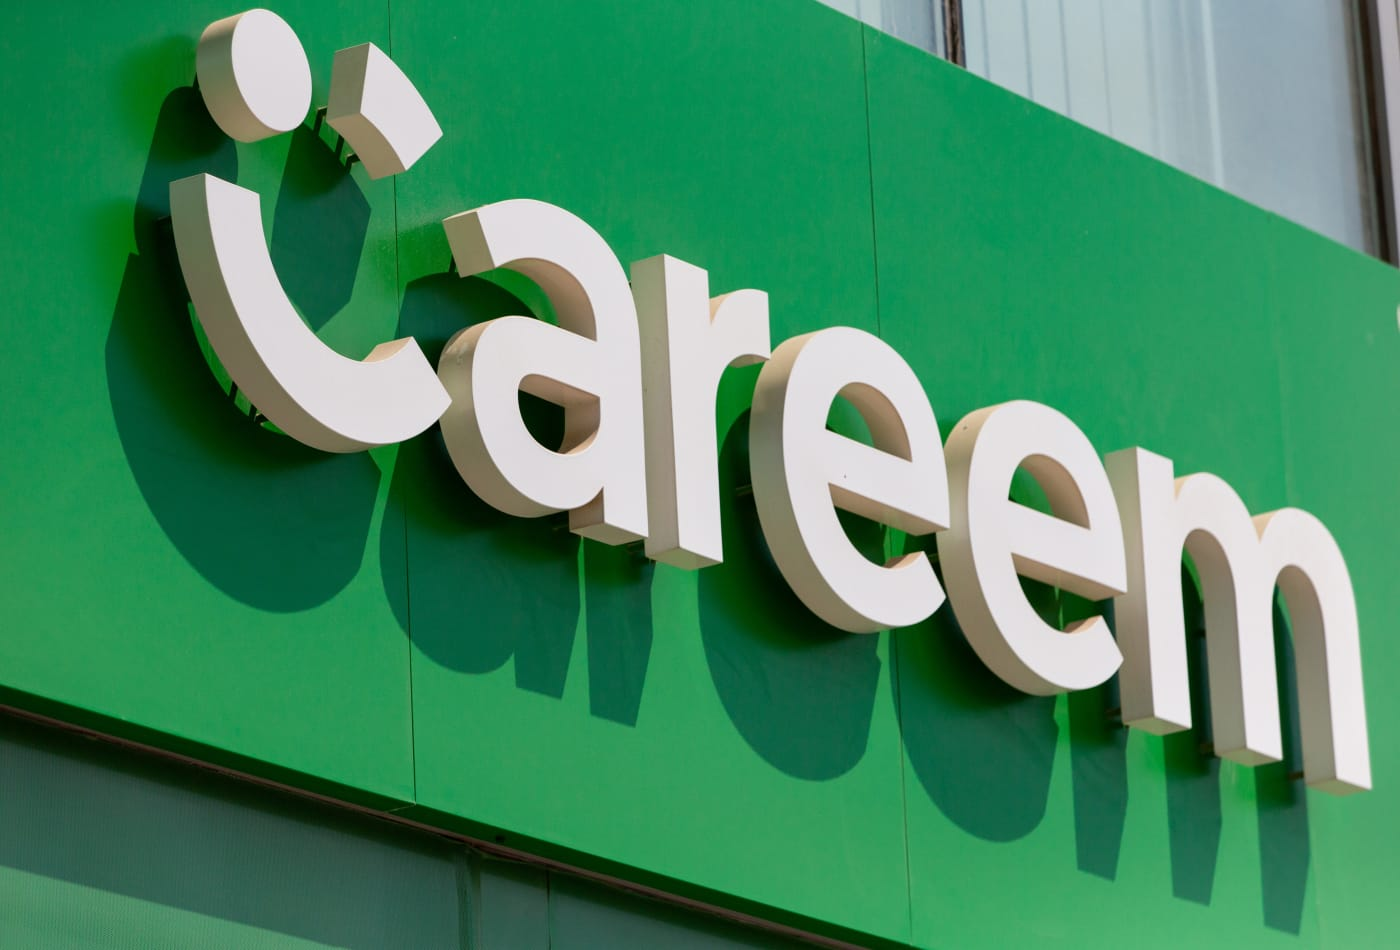 Careem doesn't expect full recovery until 2021, but sees accelerated expansion for its 'Super App'